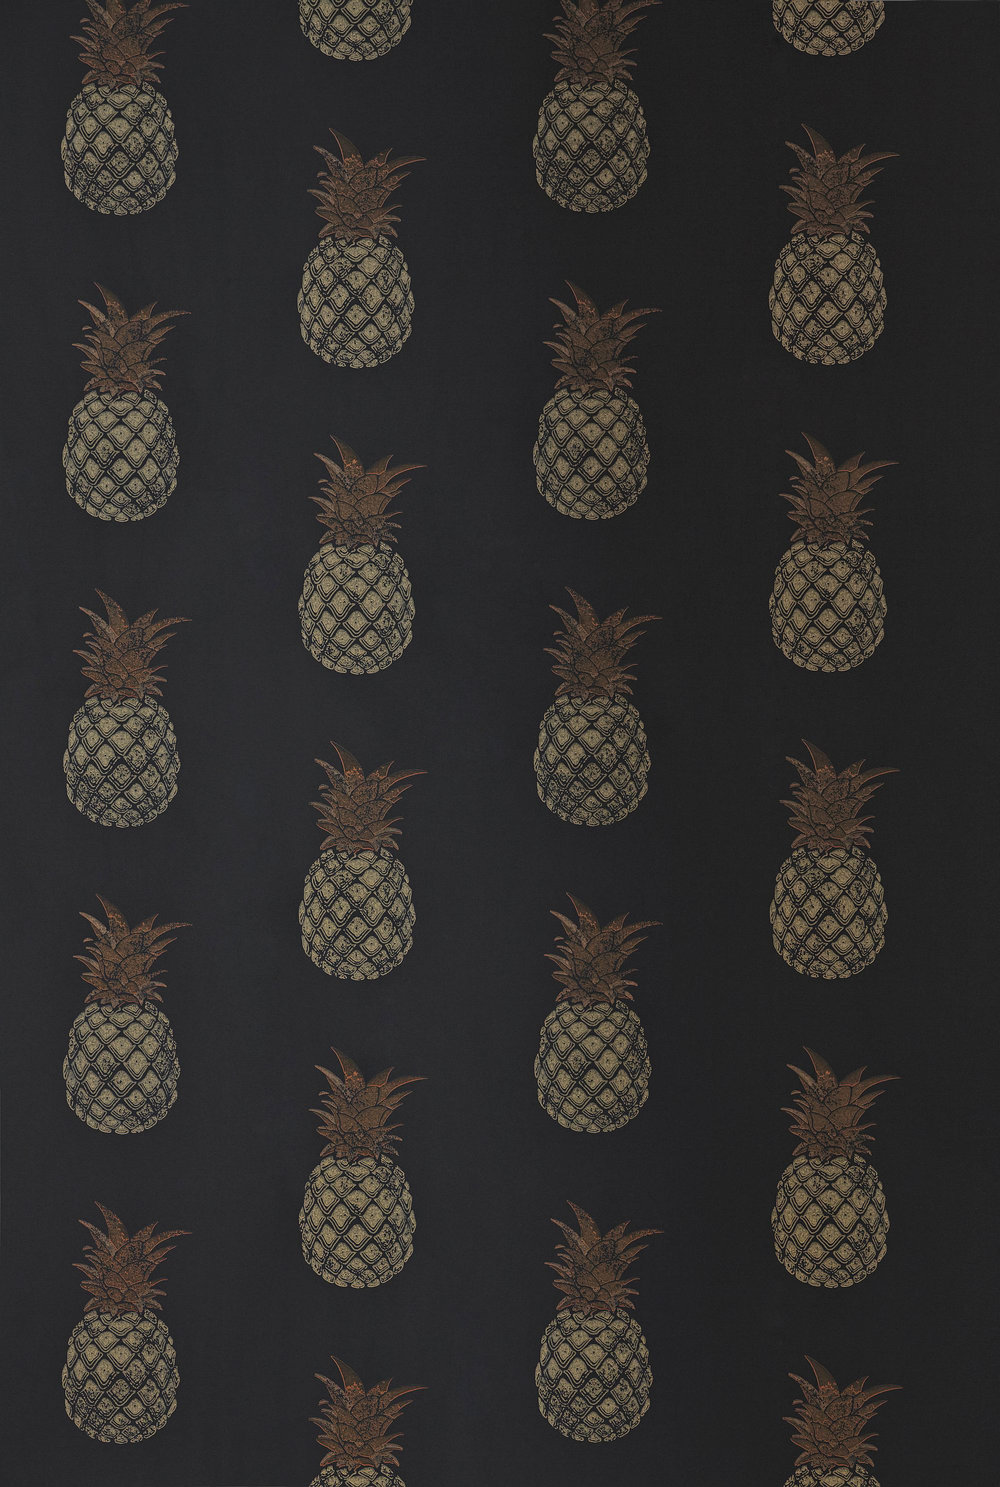 Pineapple By Barneby Gates Charcoal Wallpaper Direct